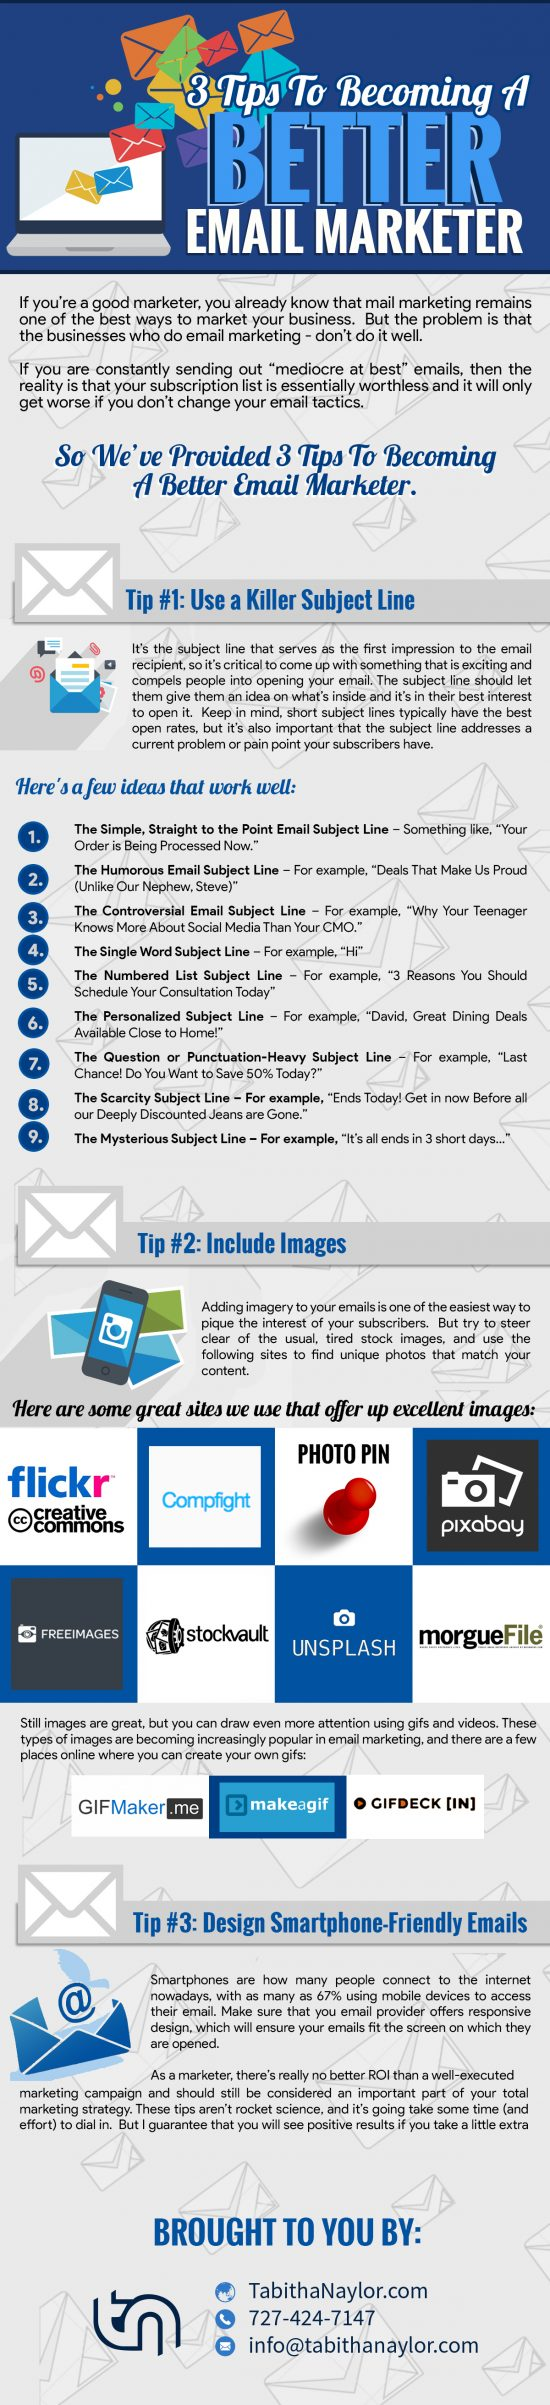 3-Tips-To-Becoming-a-Better-Email-Marketer-550x2405